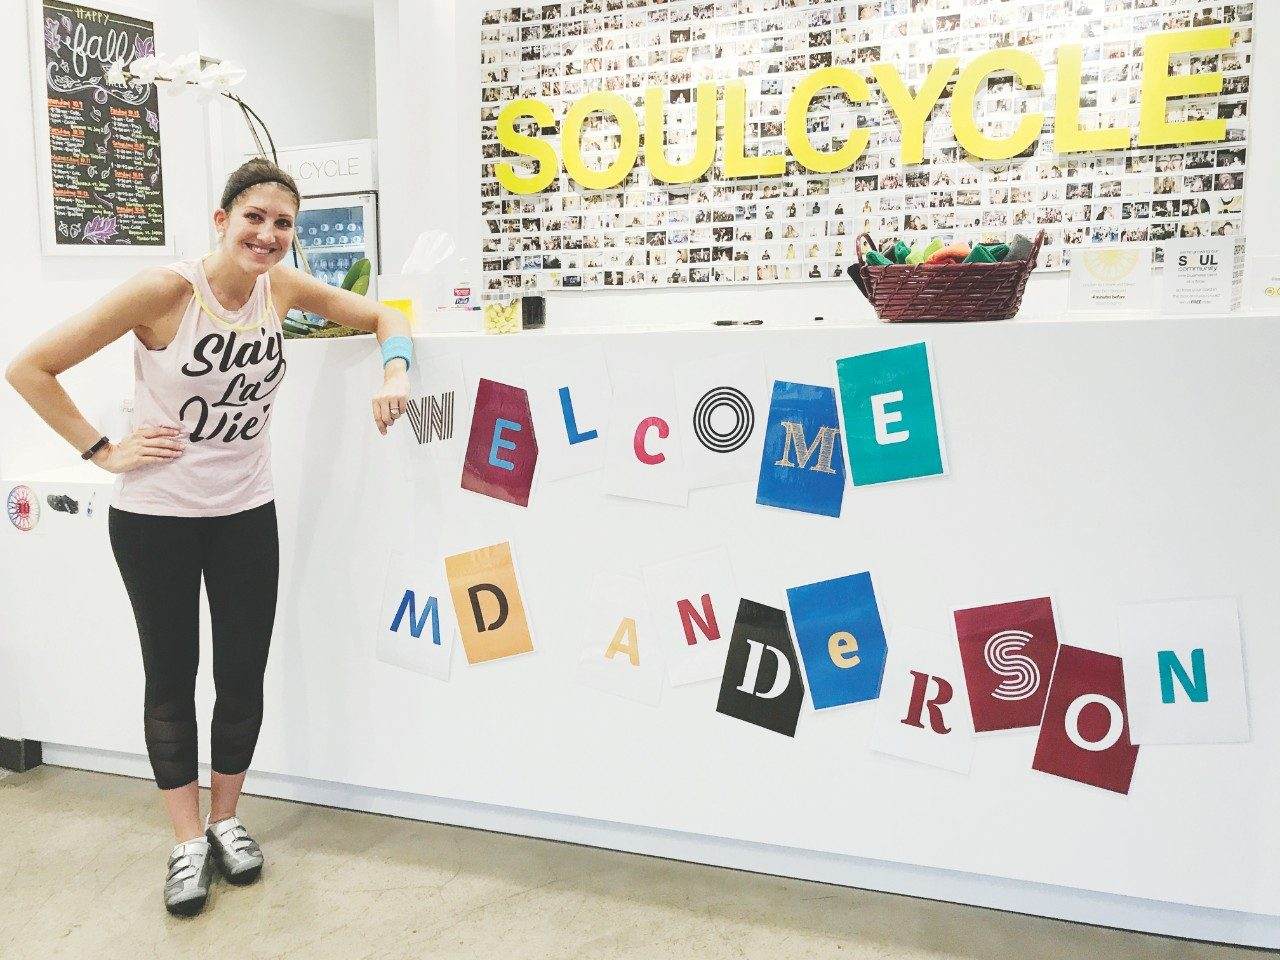 Breast cancer survivor Caroline Brown celebrates her five years of cancer survivorship by organizing a donation ride at SoulCycle, raising nearly $9,000 for MD Anderson's Caring Fund.